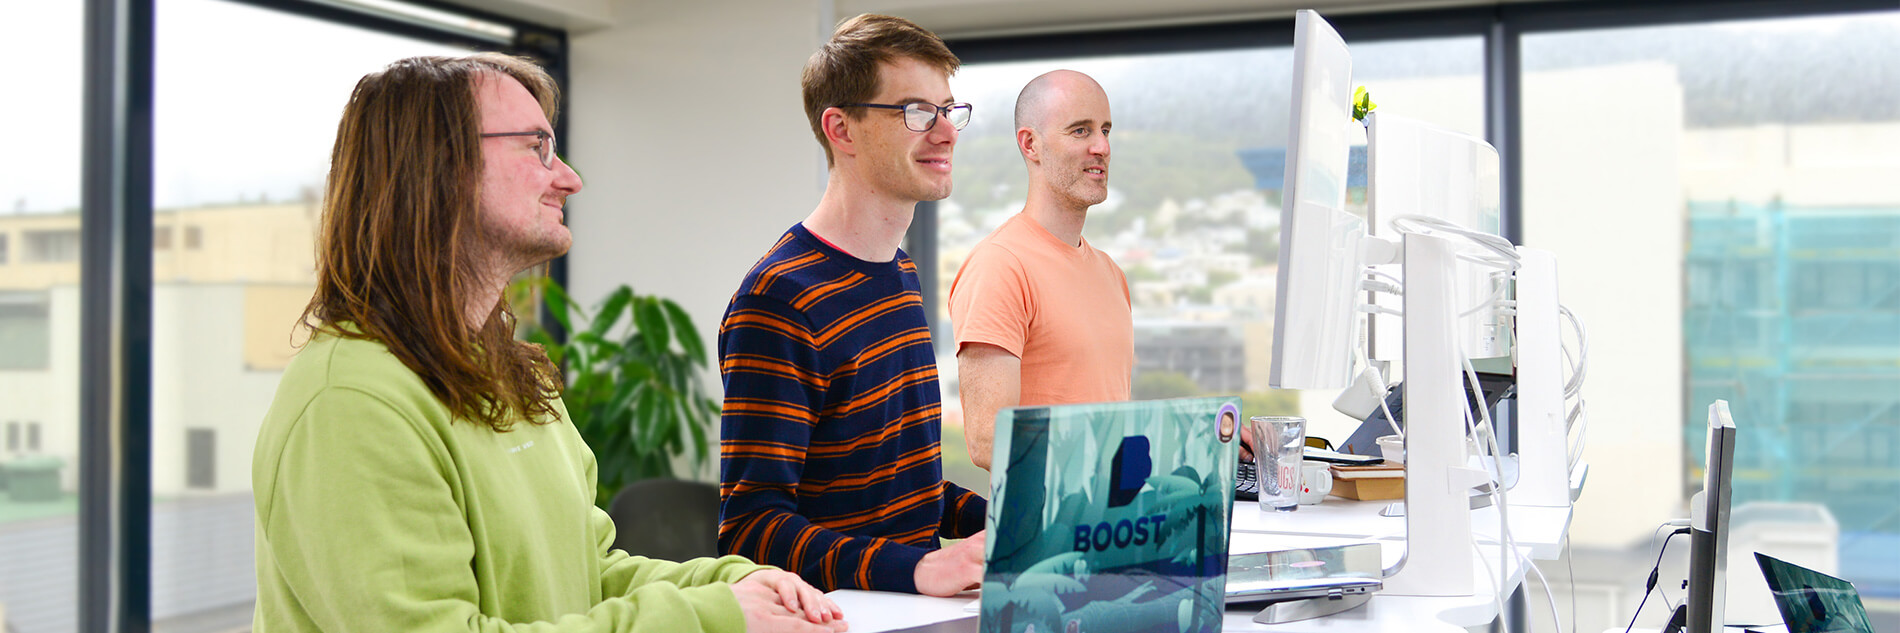 Three of the developers at Wellington mobile app development company Boost.